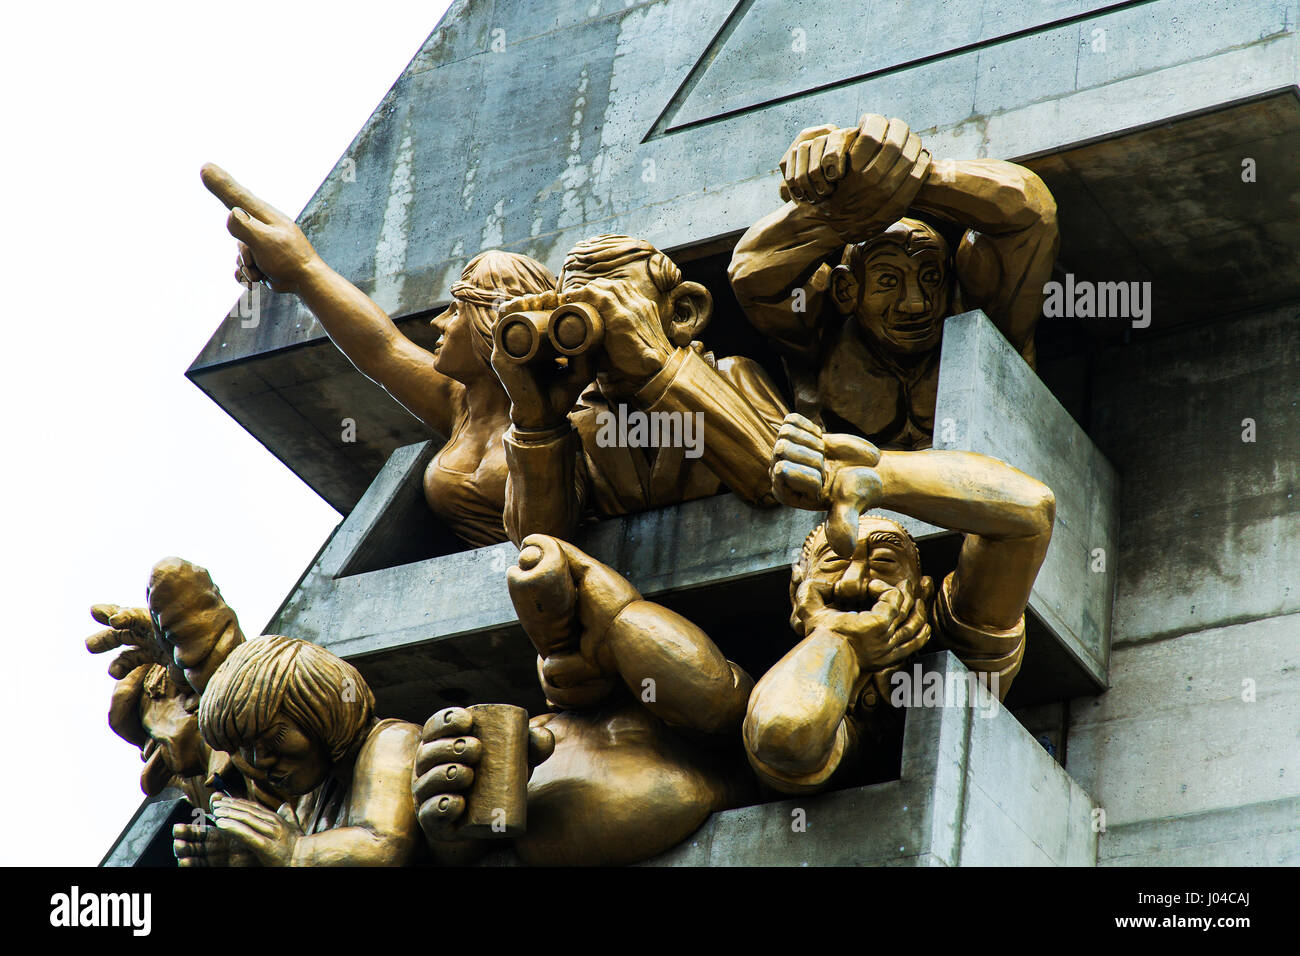 The Audience by Michael Snow. Baseball fan gargoyles at the Rogers Centre (formerly The Skydome) in Toronto, Ontario - Stock Image